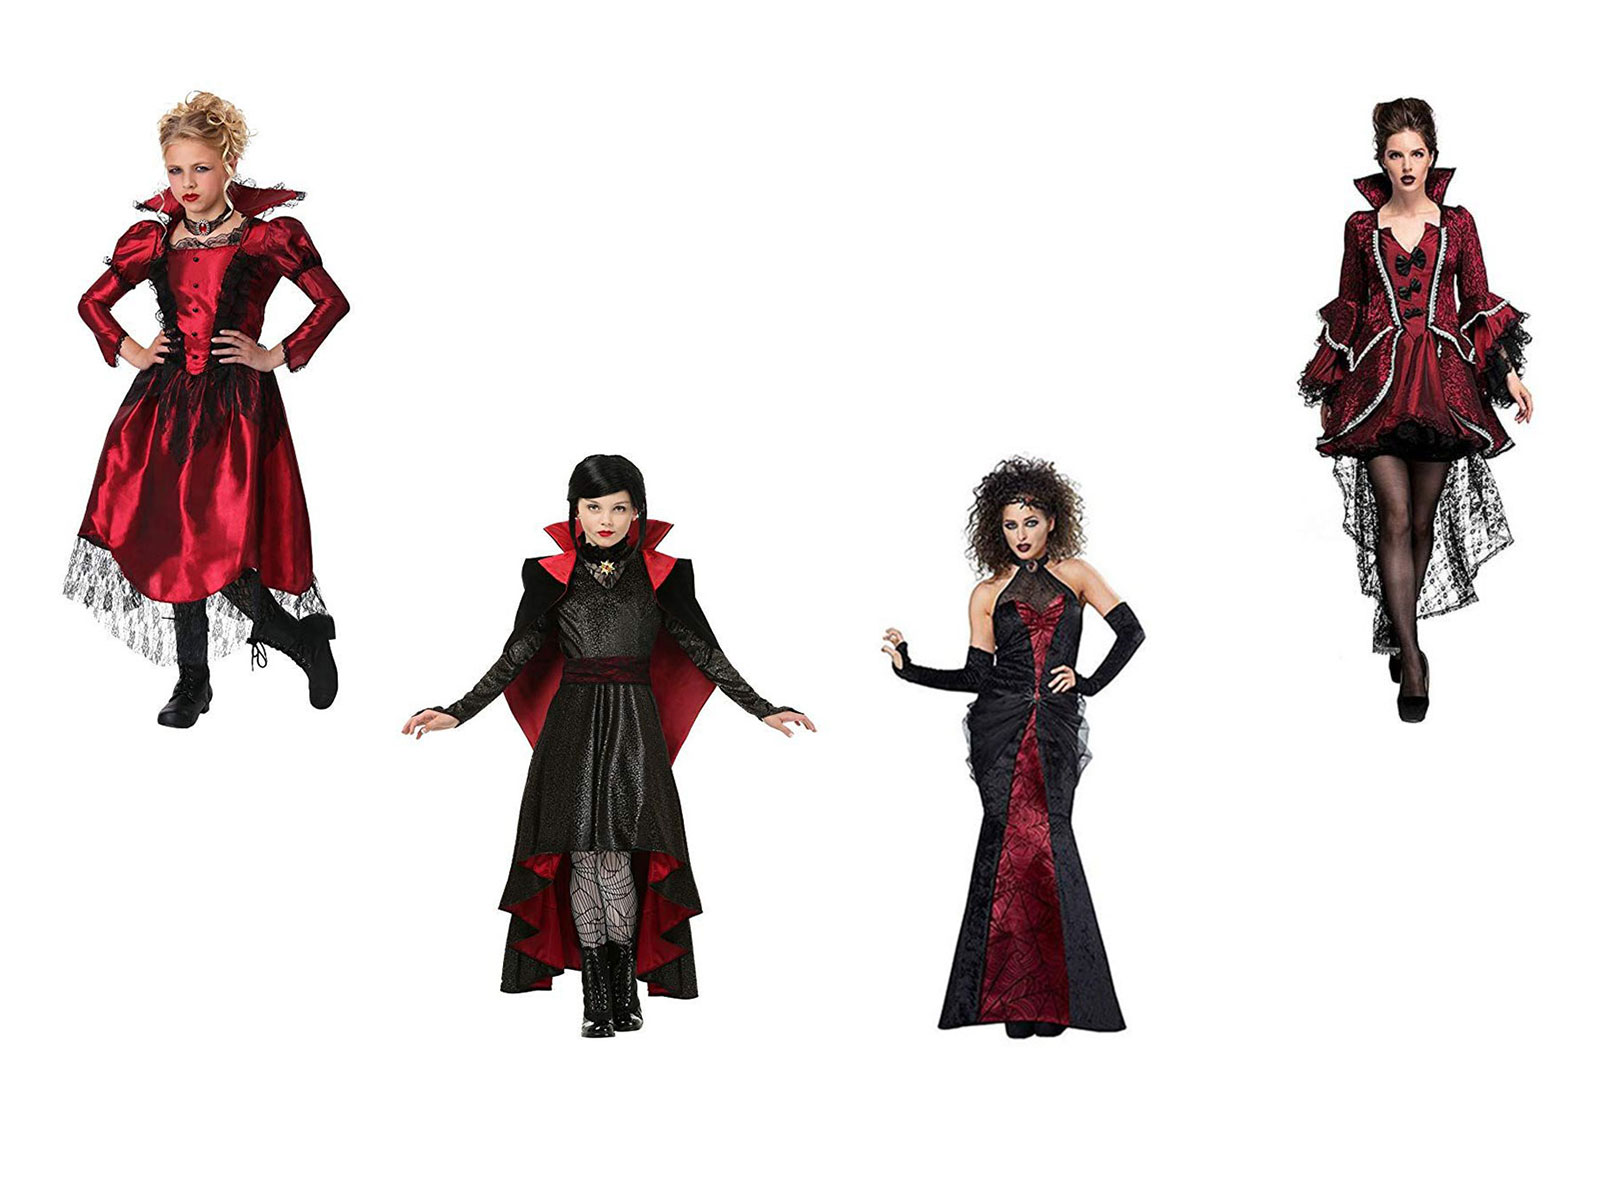 20-Spooky-Halloween-Vampire-Costume-Ideas-For-Kids-Men-Women-2019-F